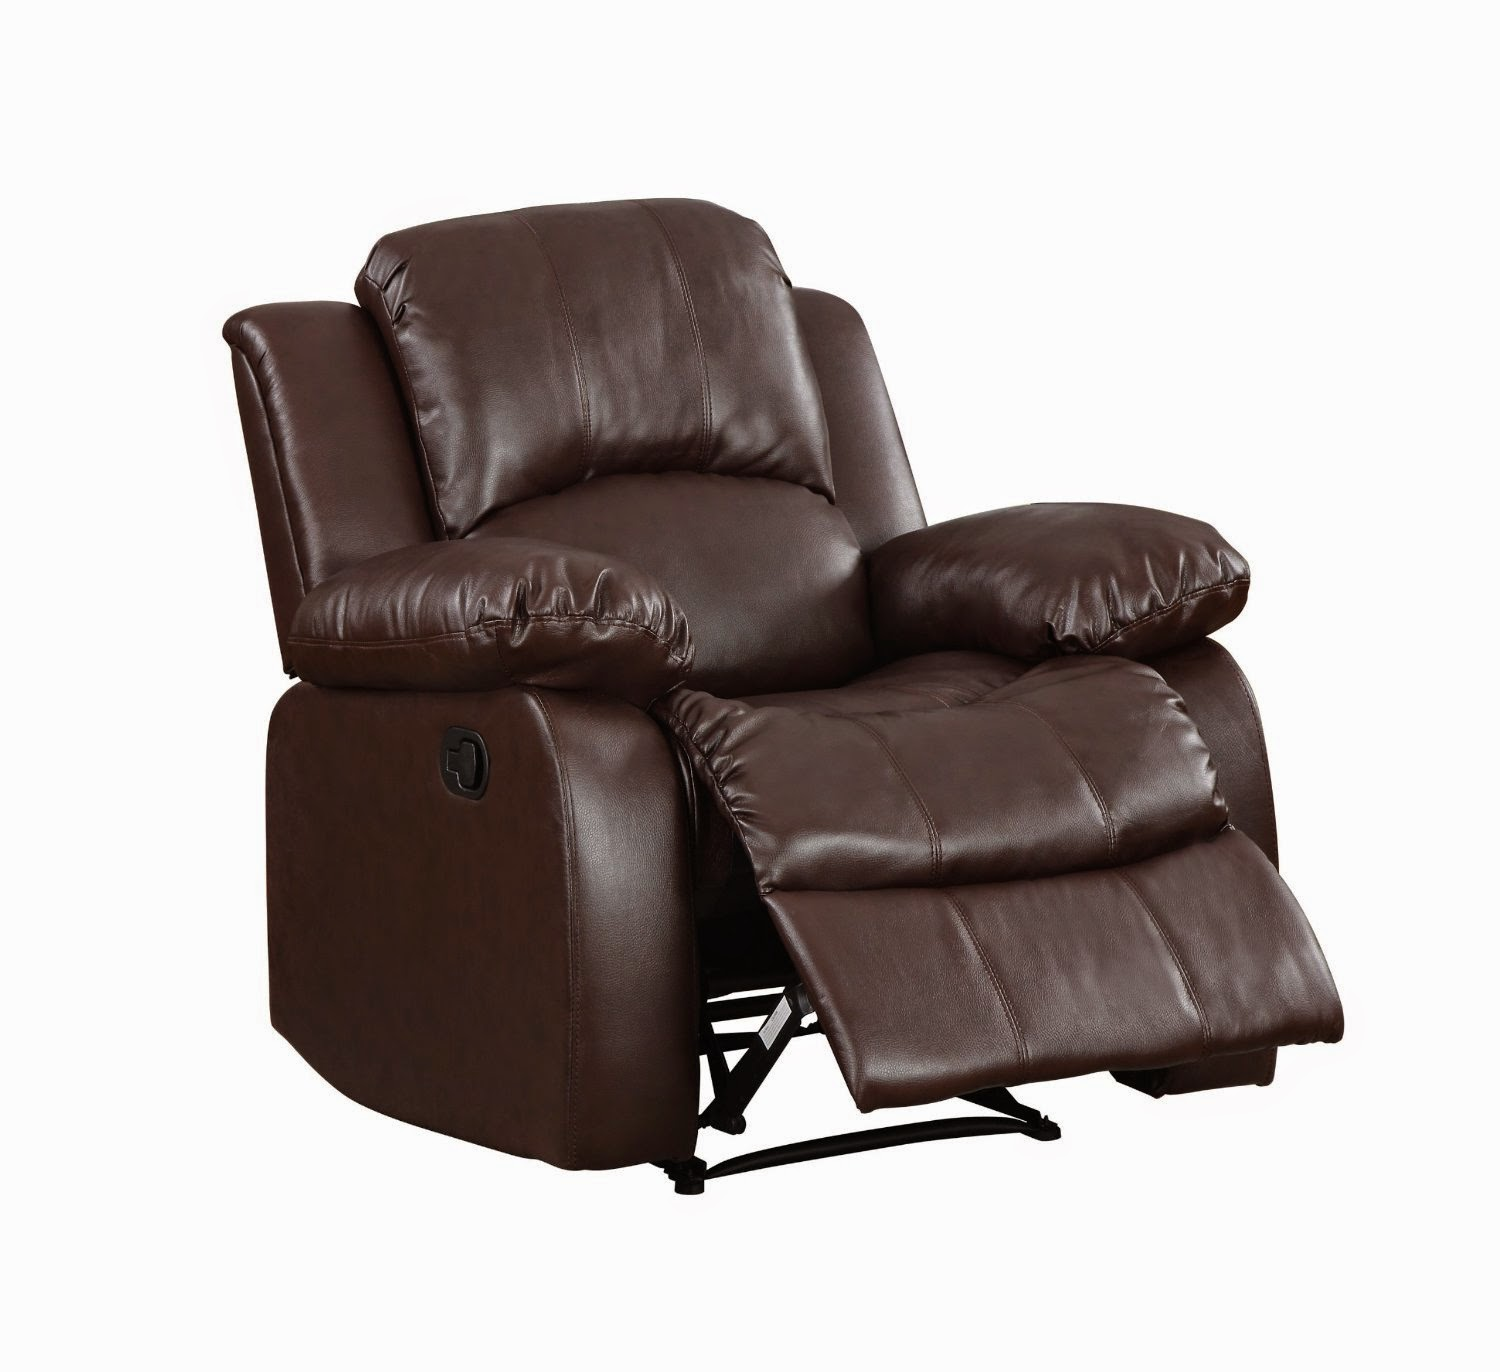 Cheap Sofas On Sale: Cheap Reclining Sofas Sale: Leather Reclining Sofa Costco